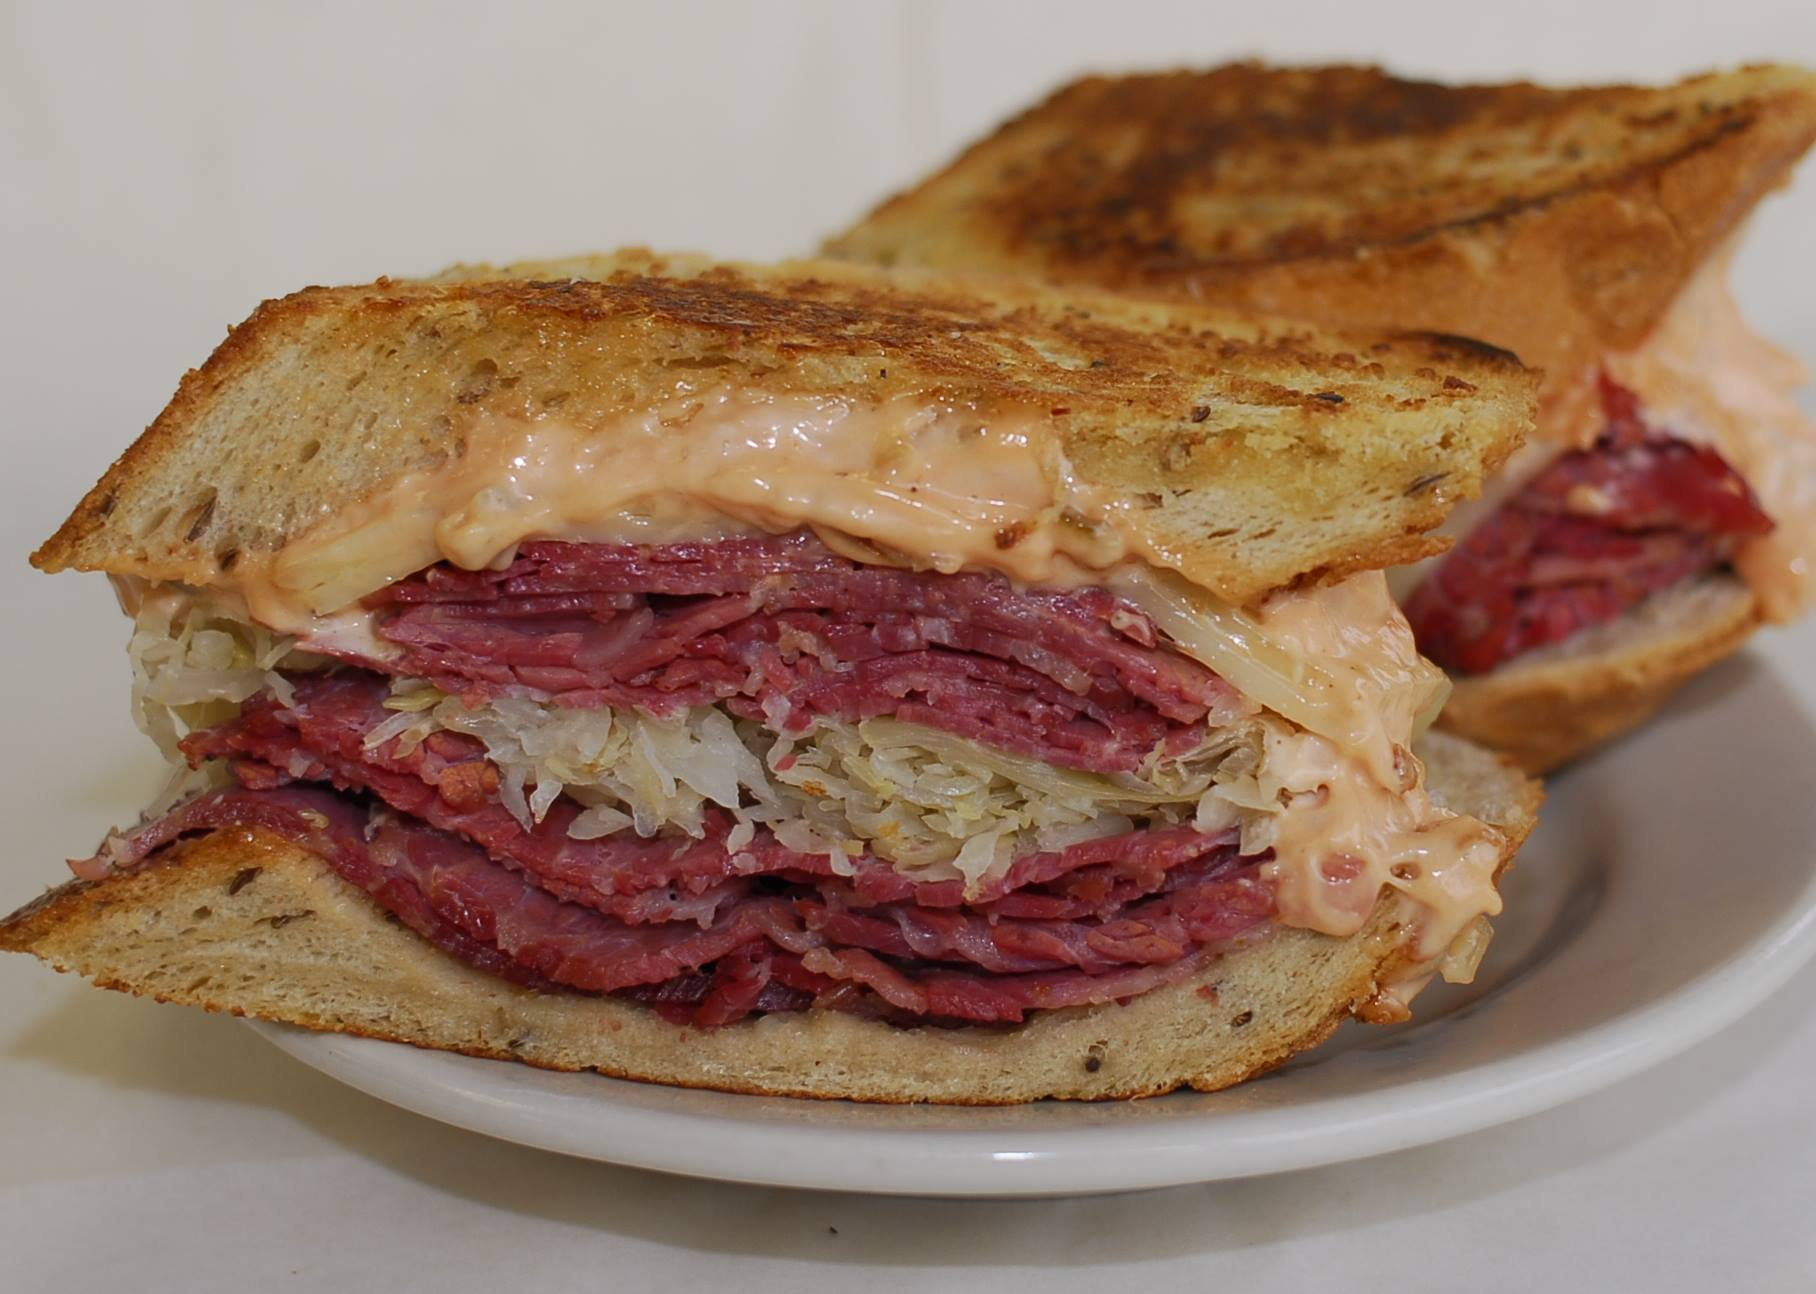 A Reuben from Shapiro's Deli